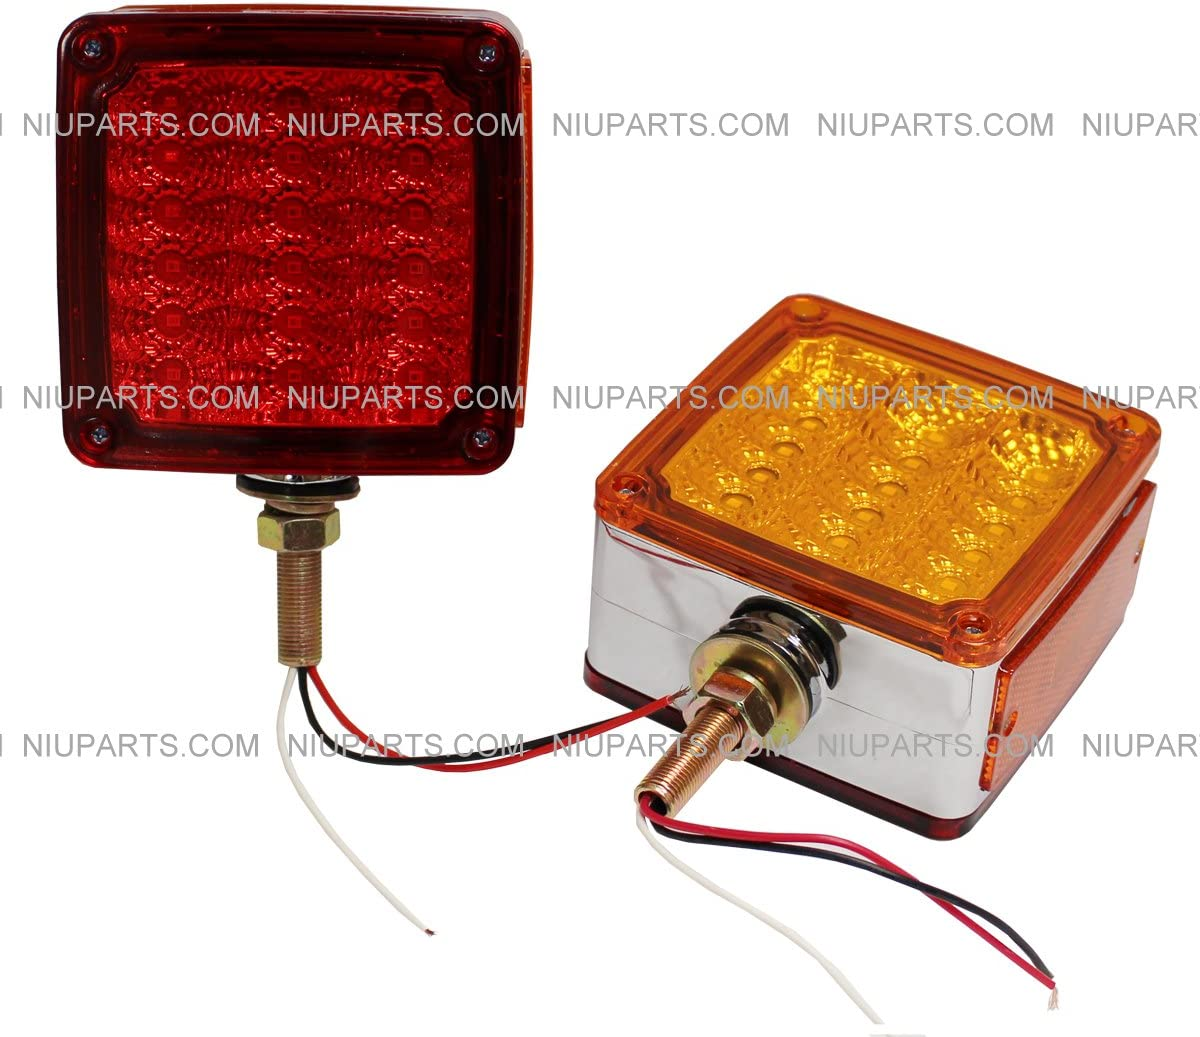 Pedestal Cab Fender Light 39 LED Square Single Face Stud Red A lowest price 2 All items free shipping